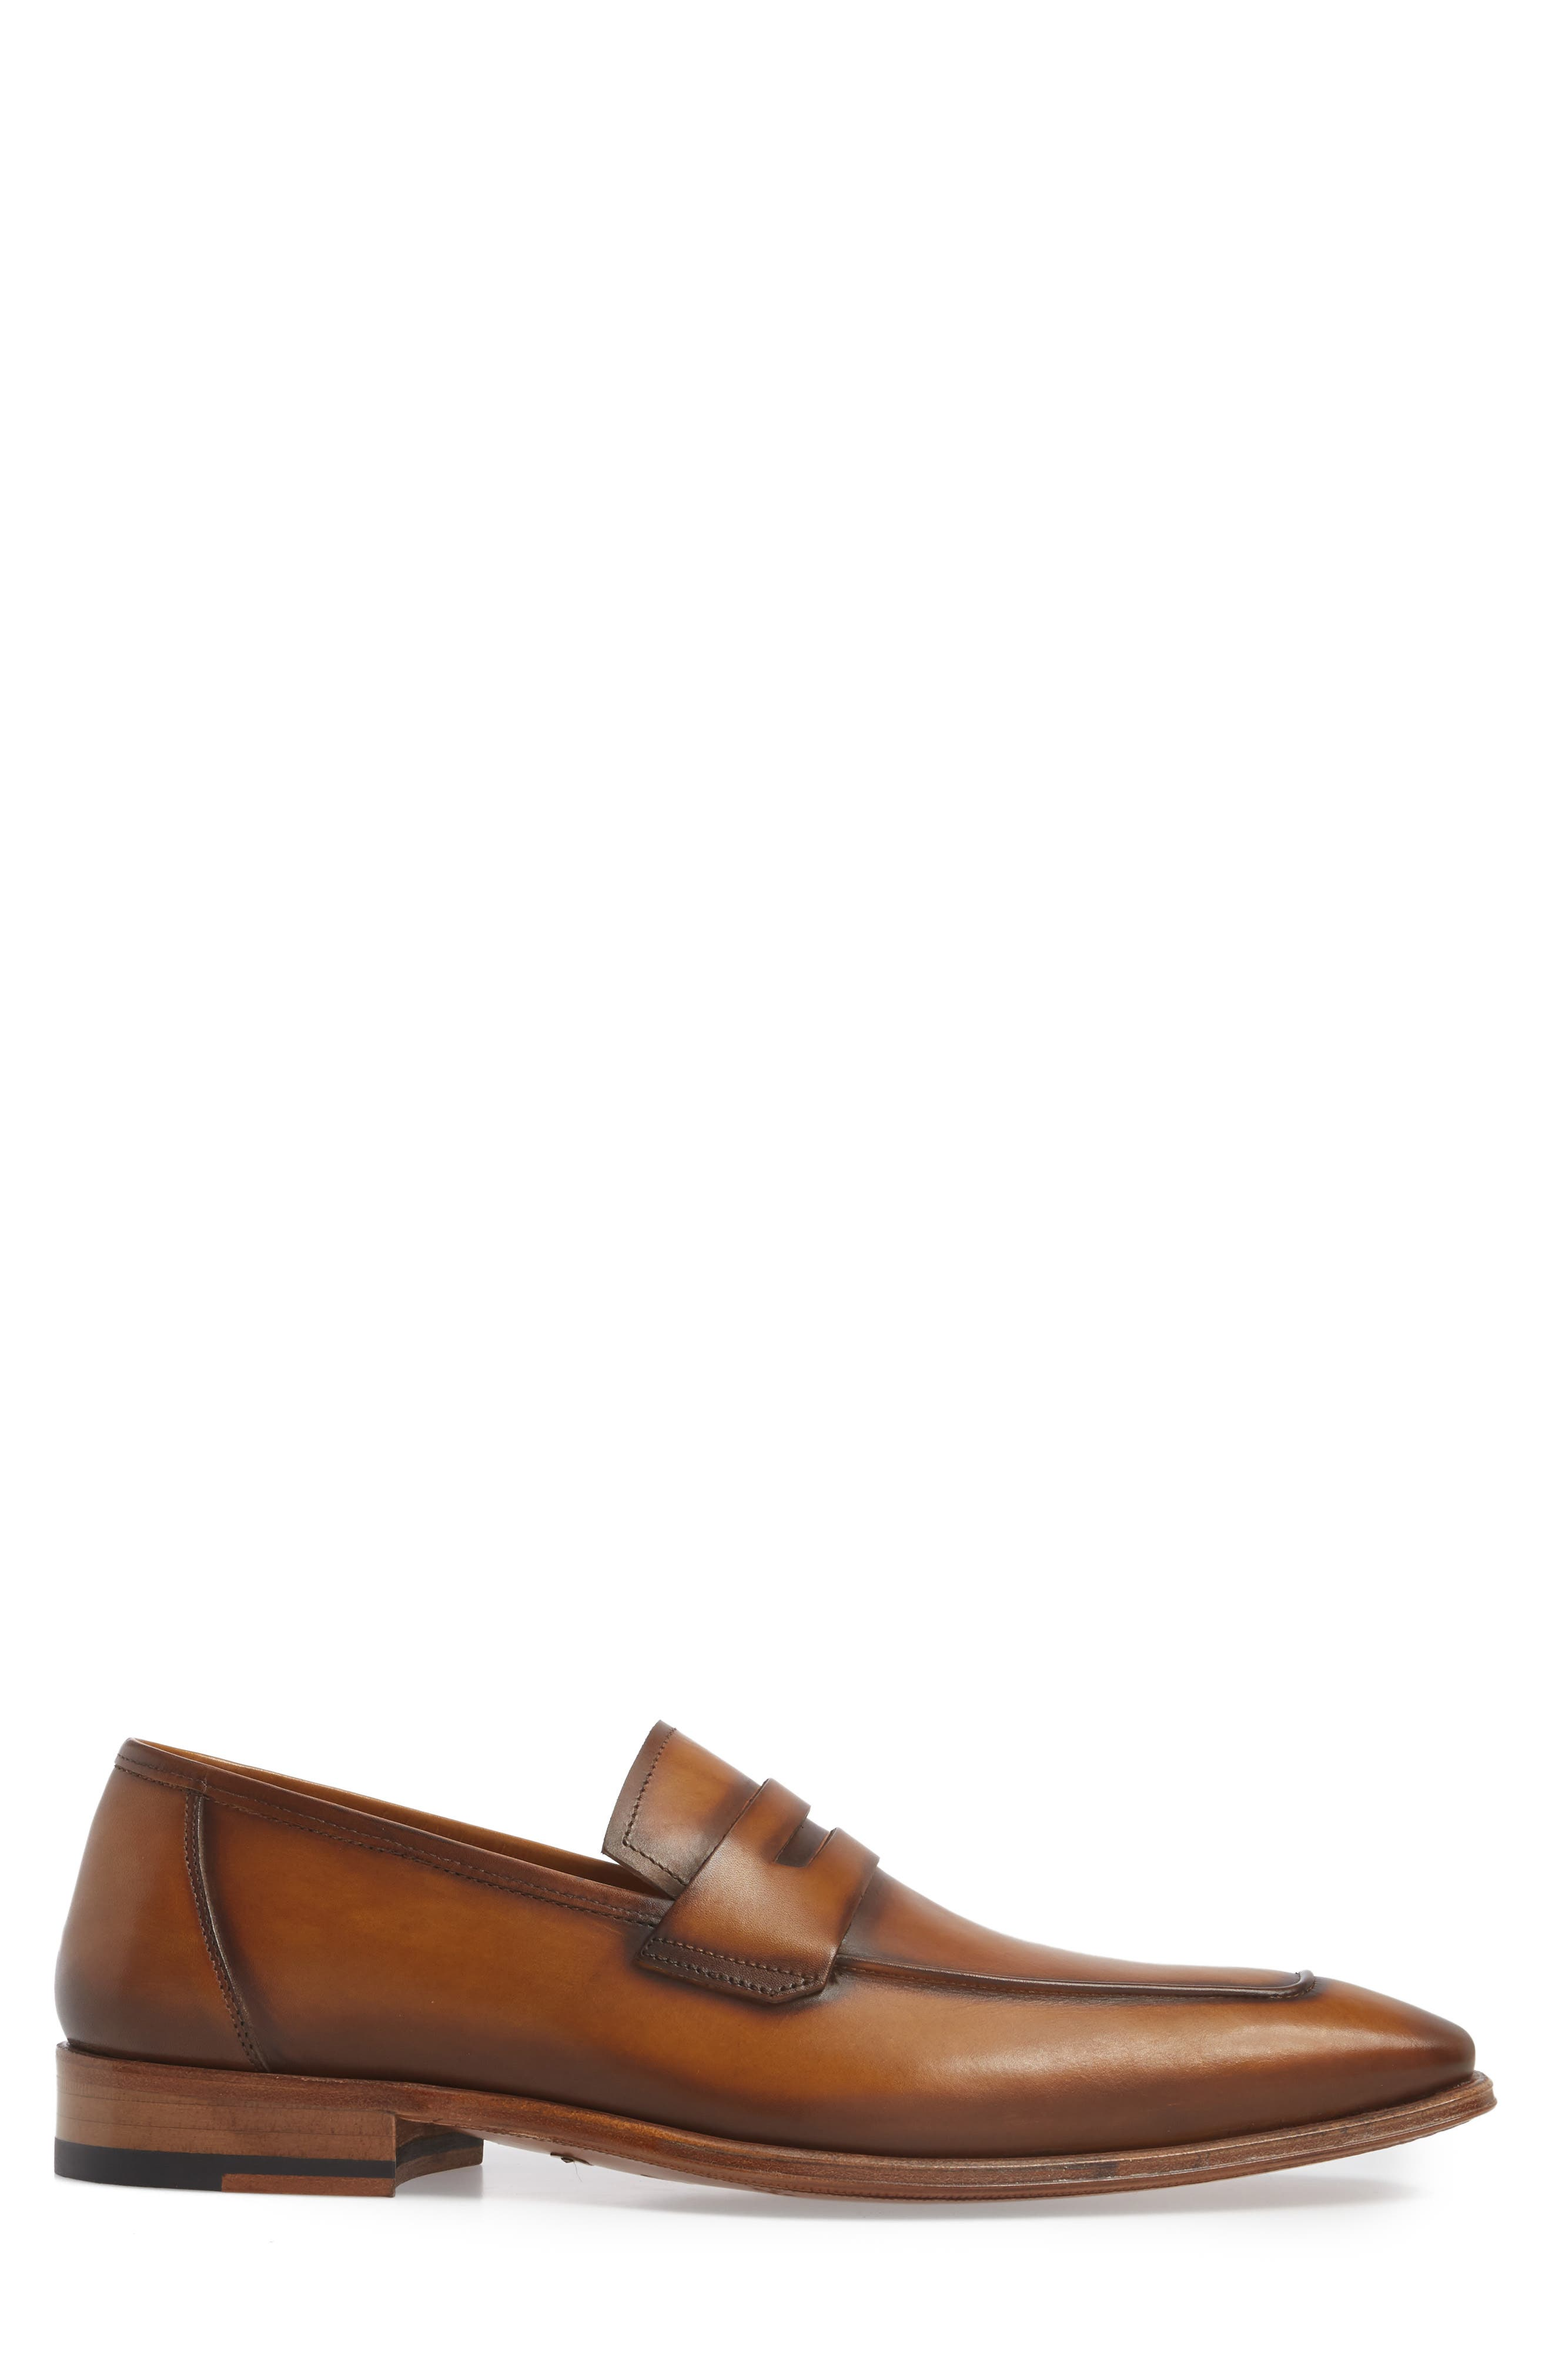 Marcus Penny Loafer,                             Alternate thumbnail 3, color,                             212